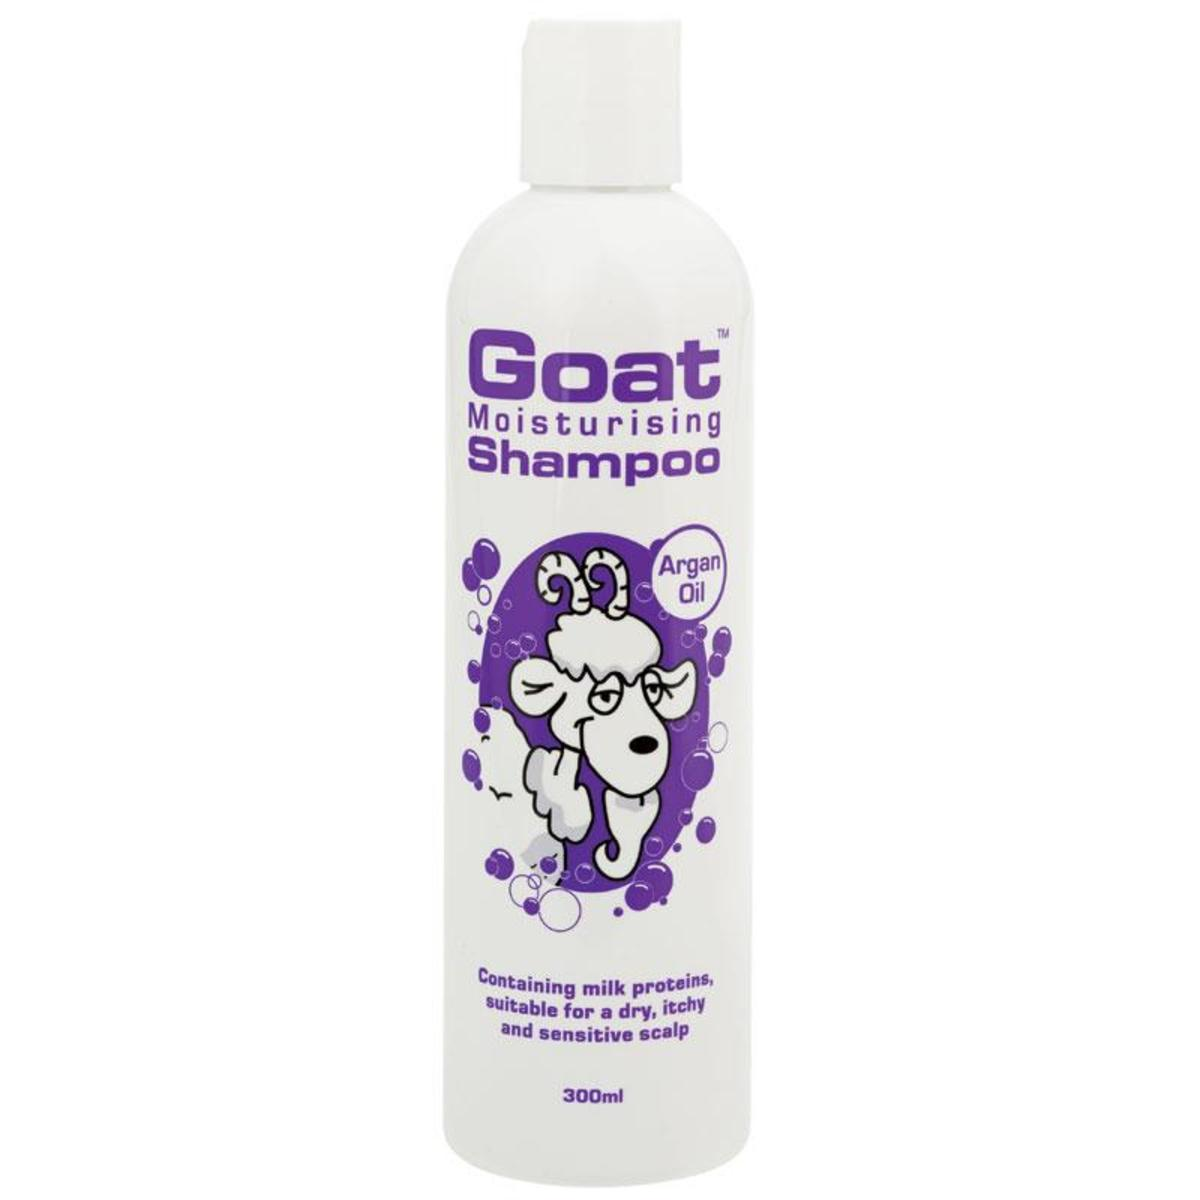 Goat Shampoo with Argan Oil 300ml (Parallel Import)